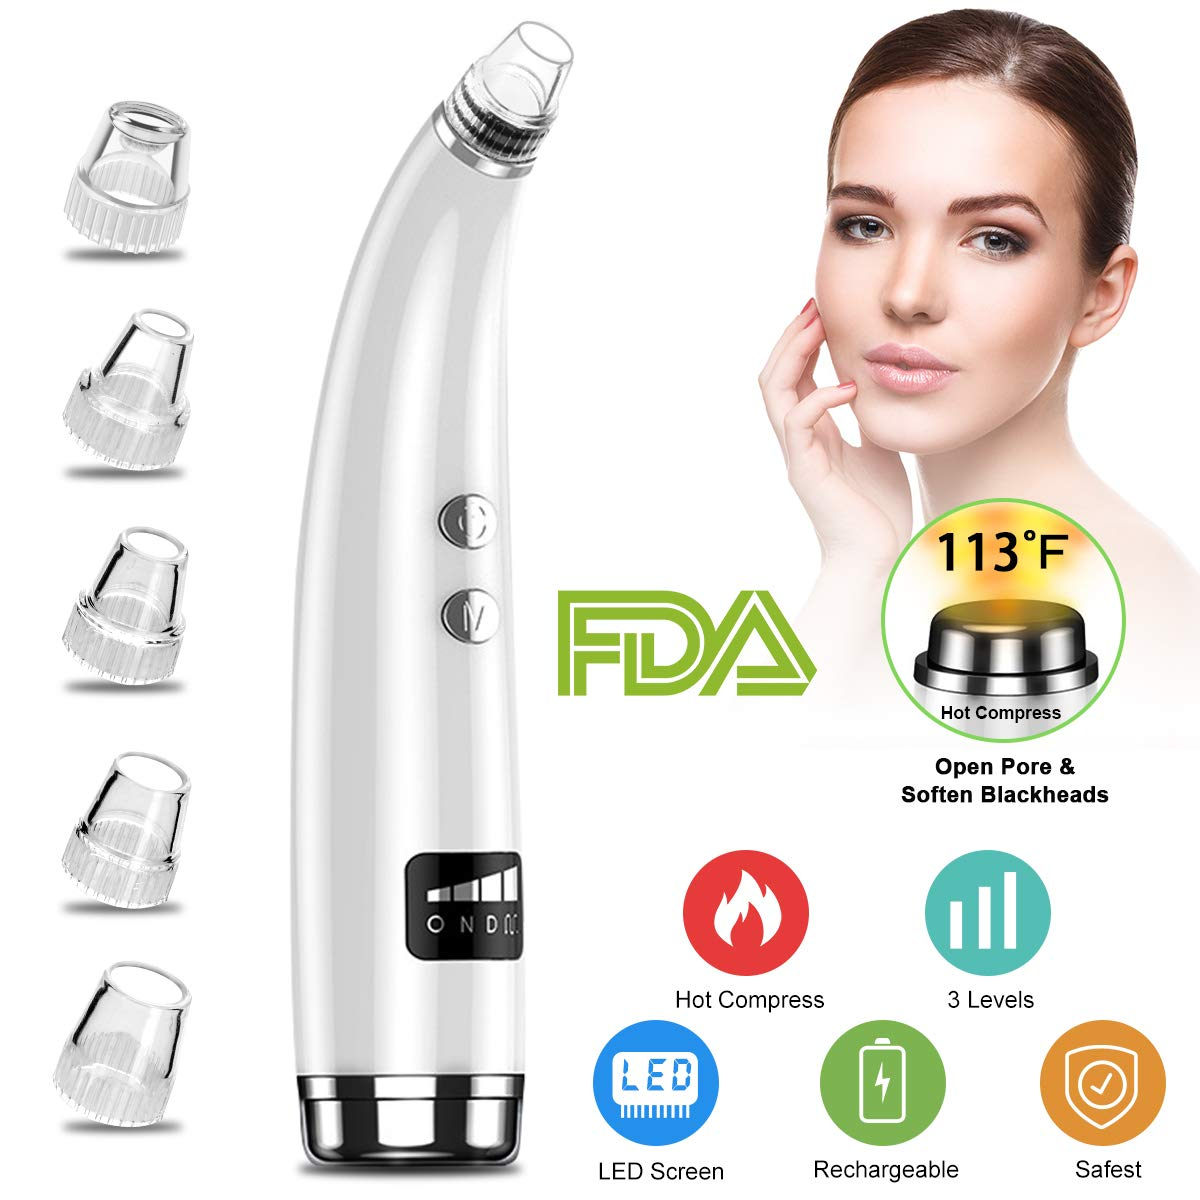 Blackhead Remover,Vacuum Blackhead Removal Peel Tool Extractor Electric Skin Pore Cleaner, Rechargeable Suction Comedone Acne Eliminator Device for Nose Face Men Women